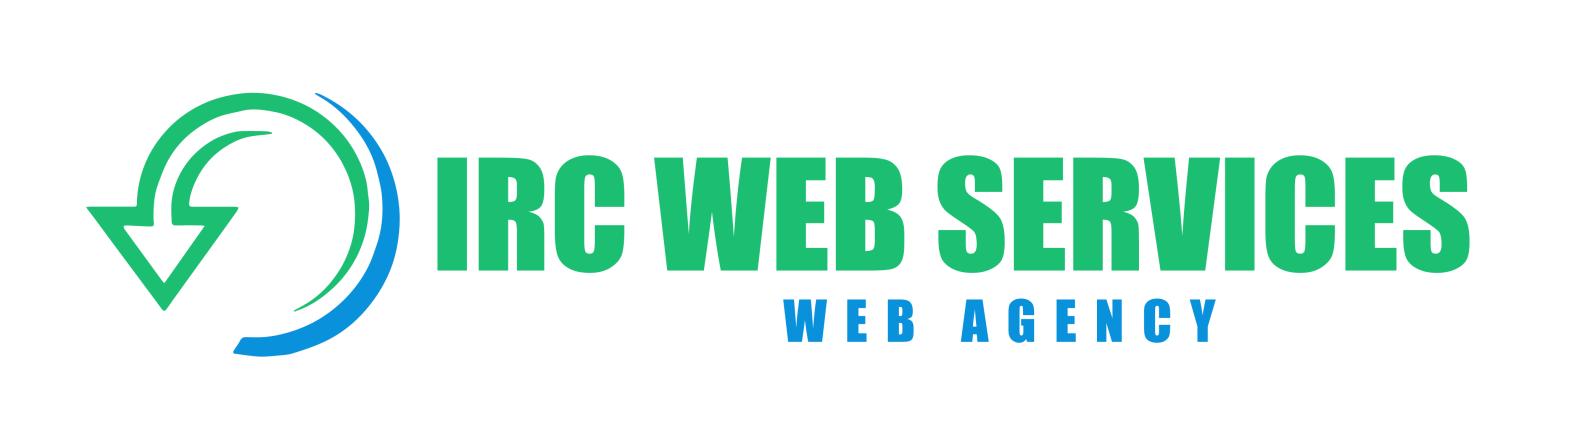 IRC Web Services Web Agency